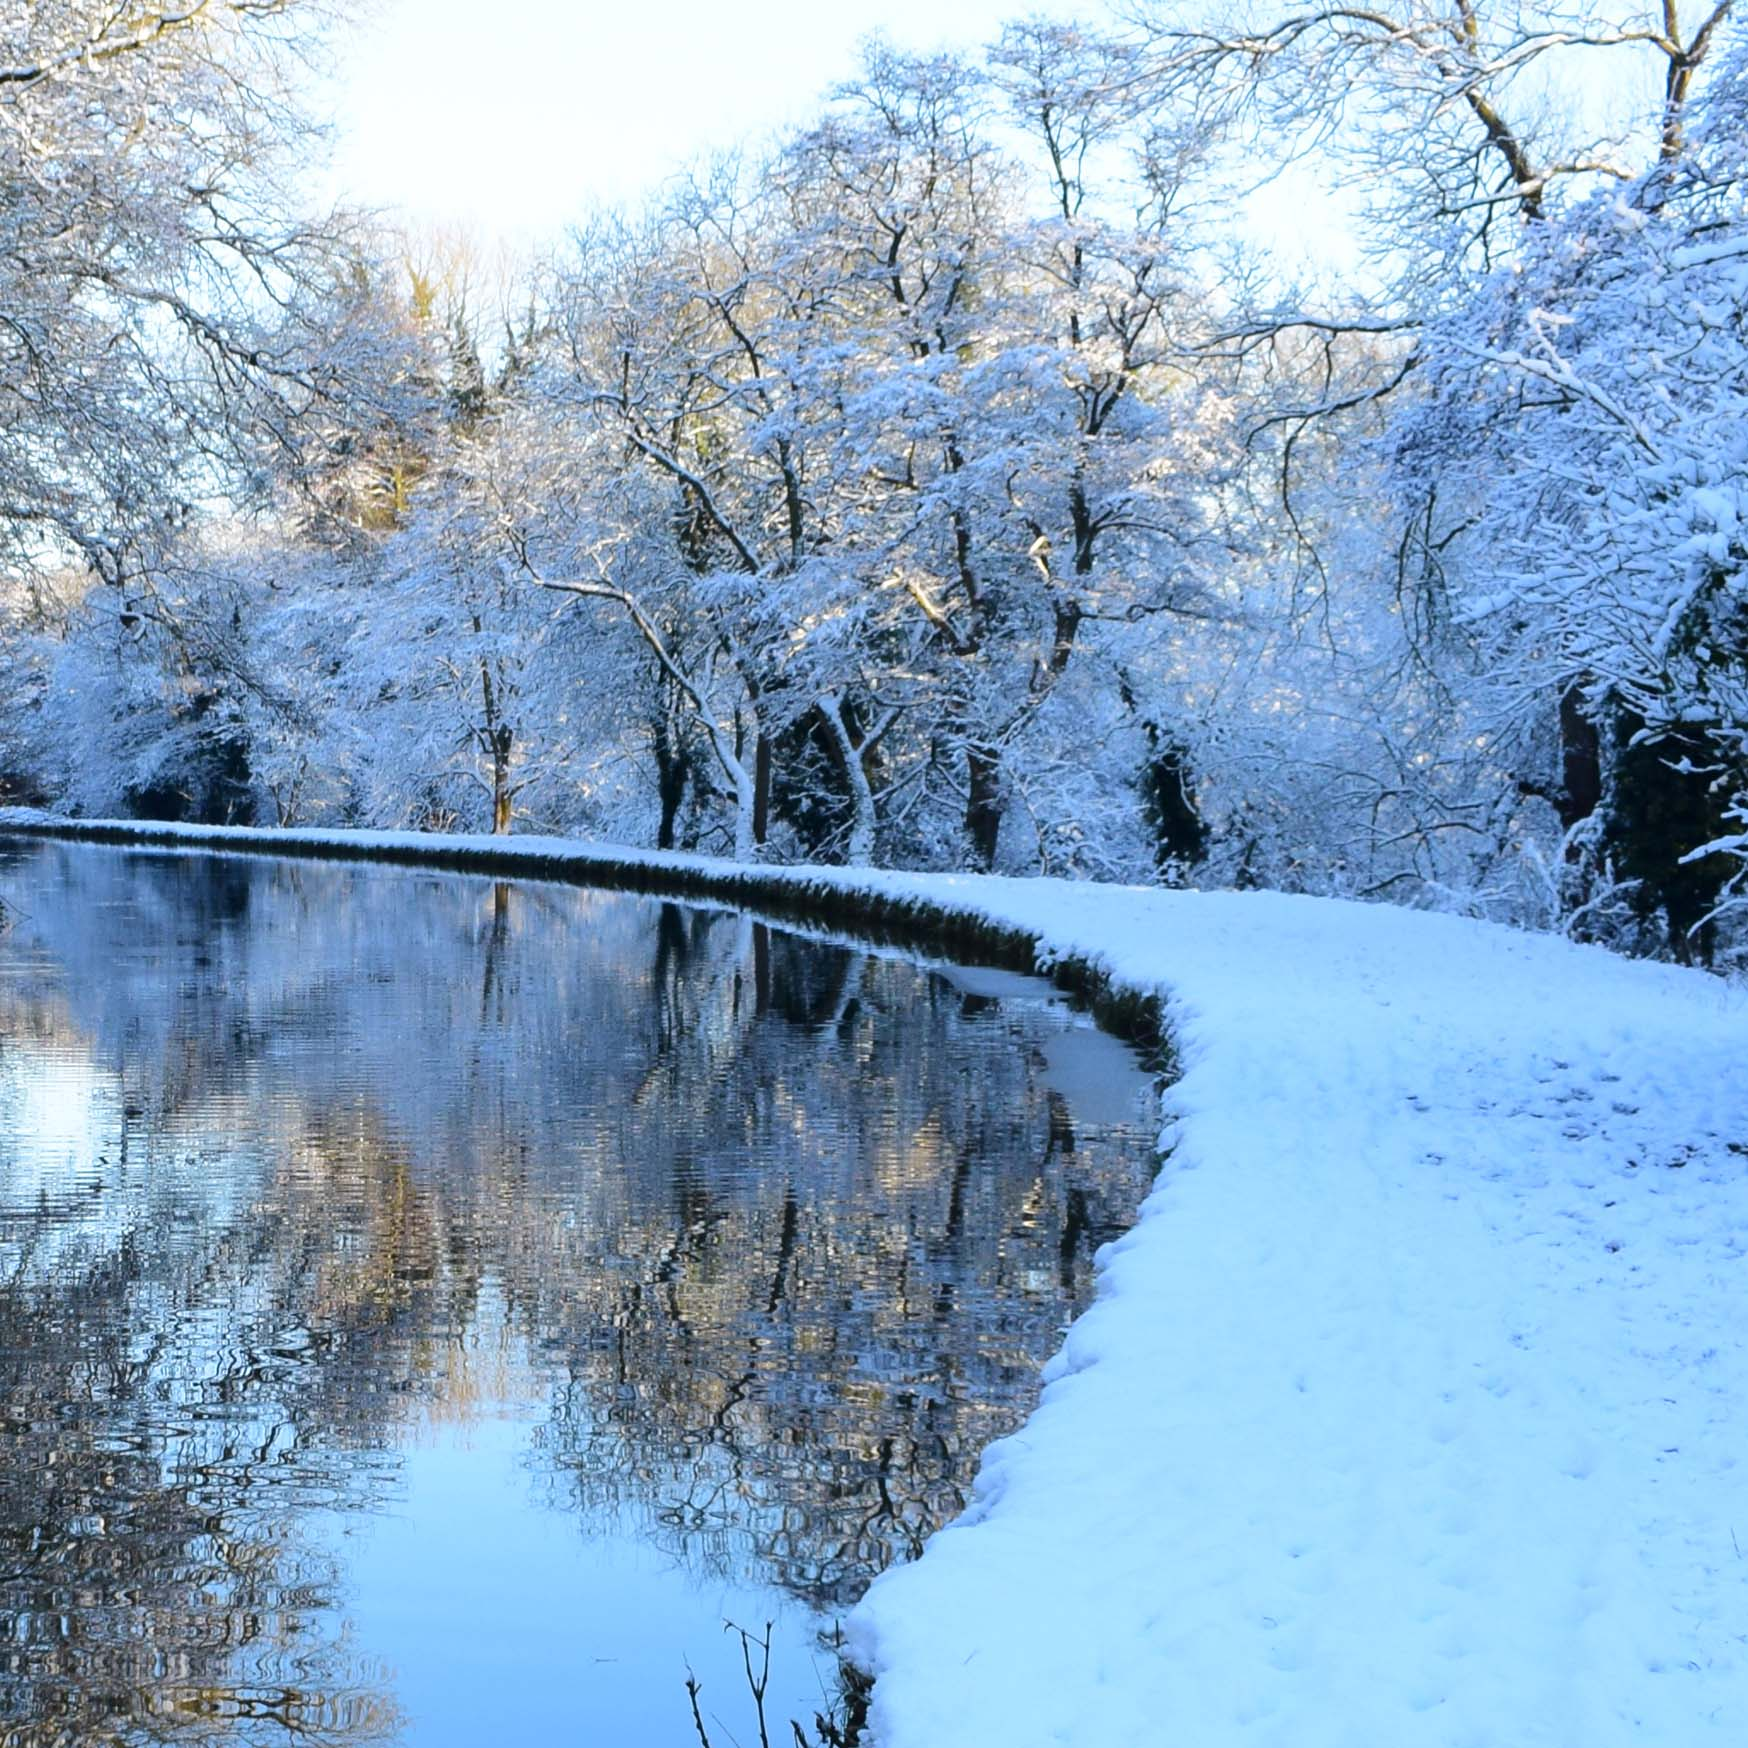 W5 Snowy Bunbury Towpath